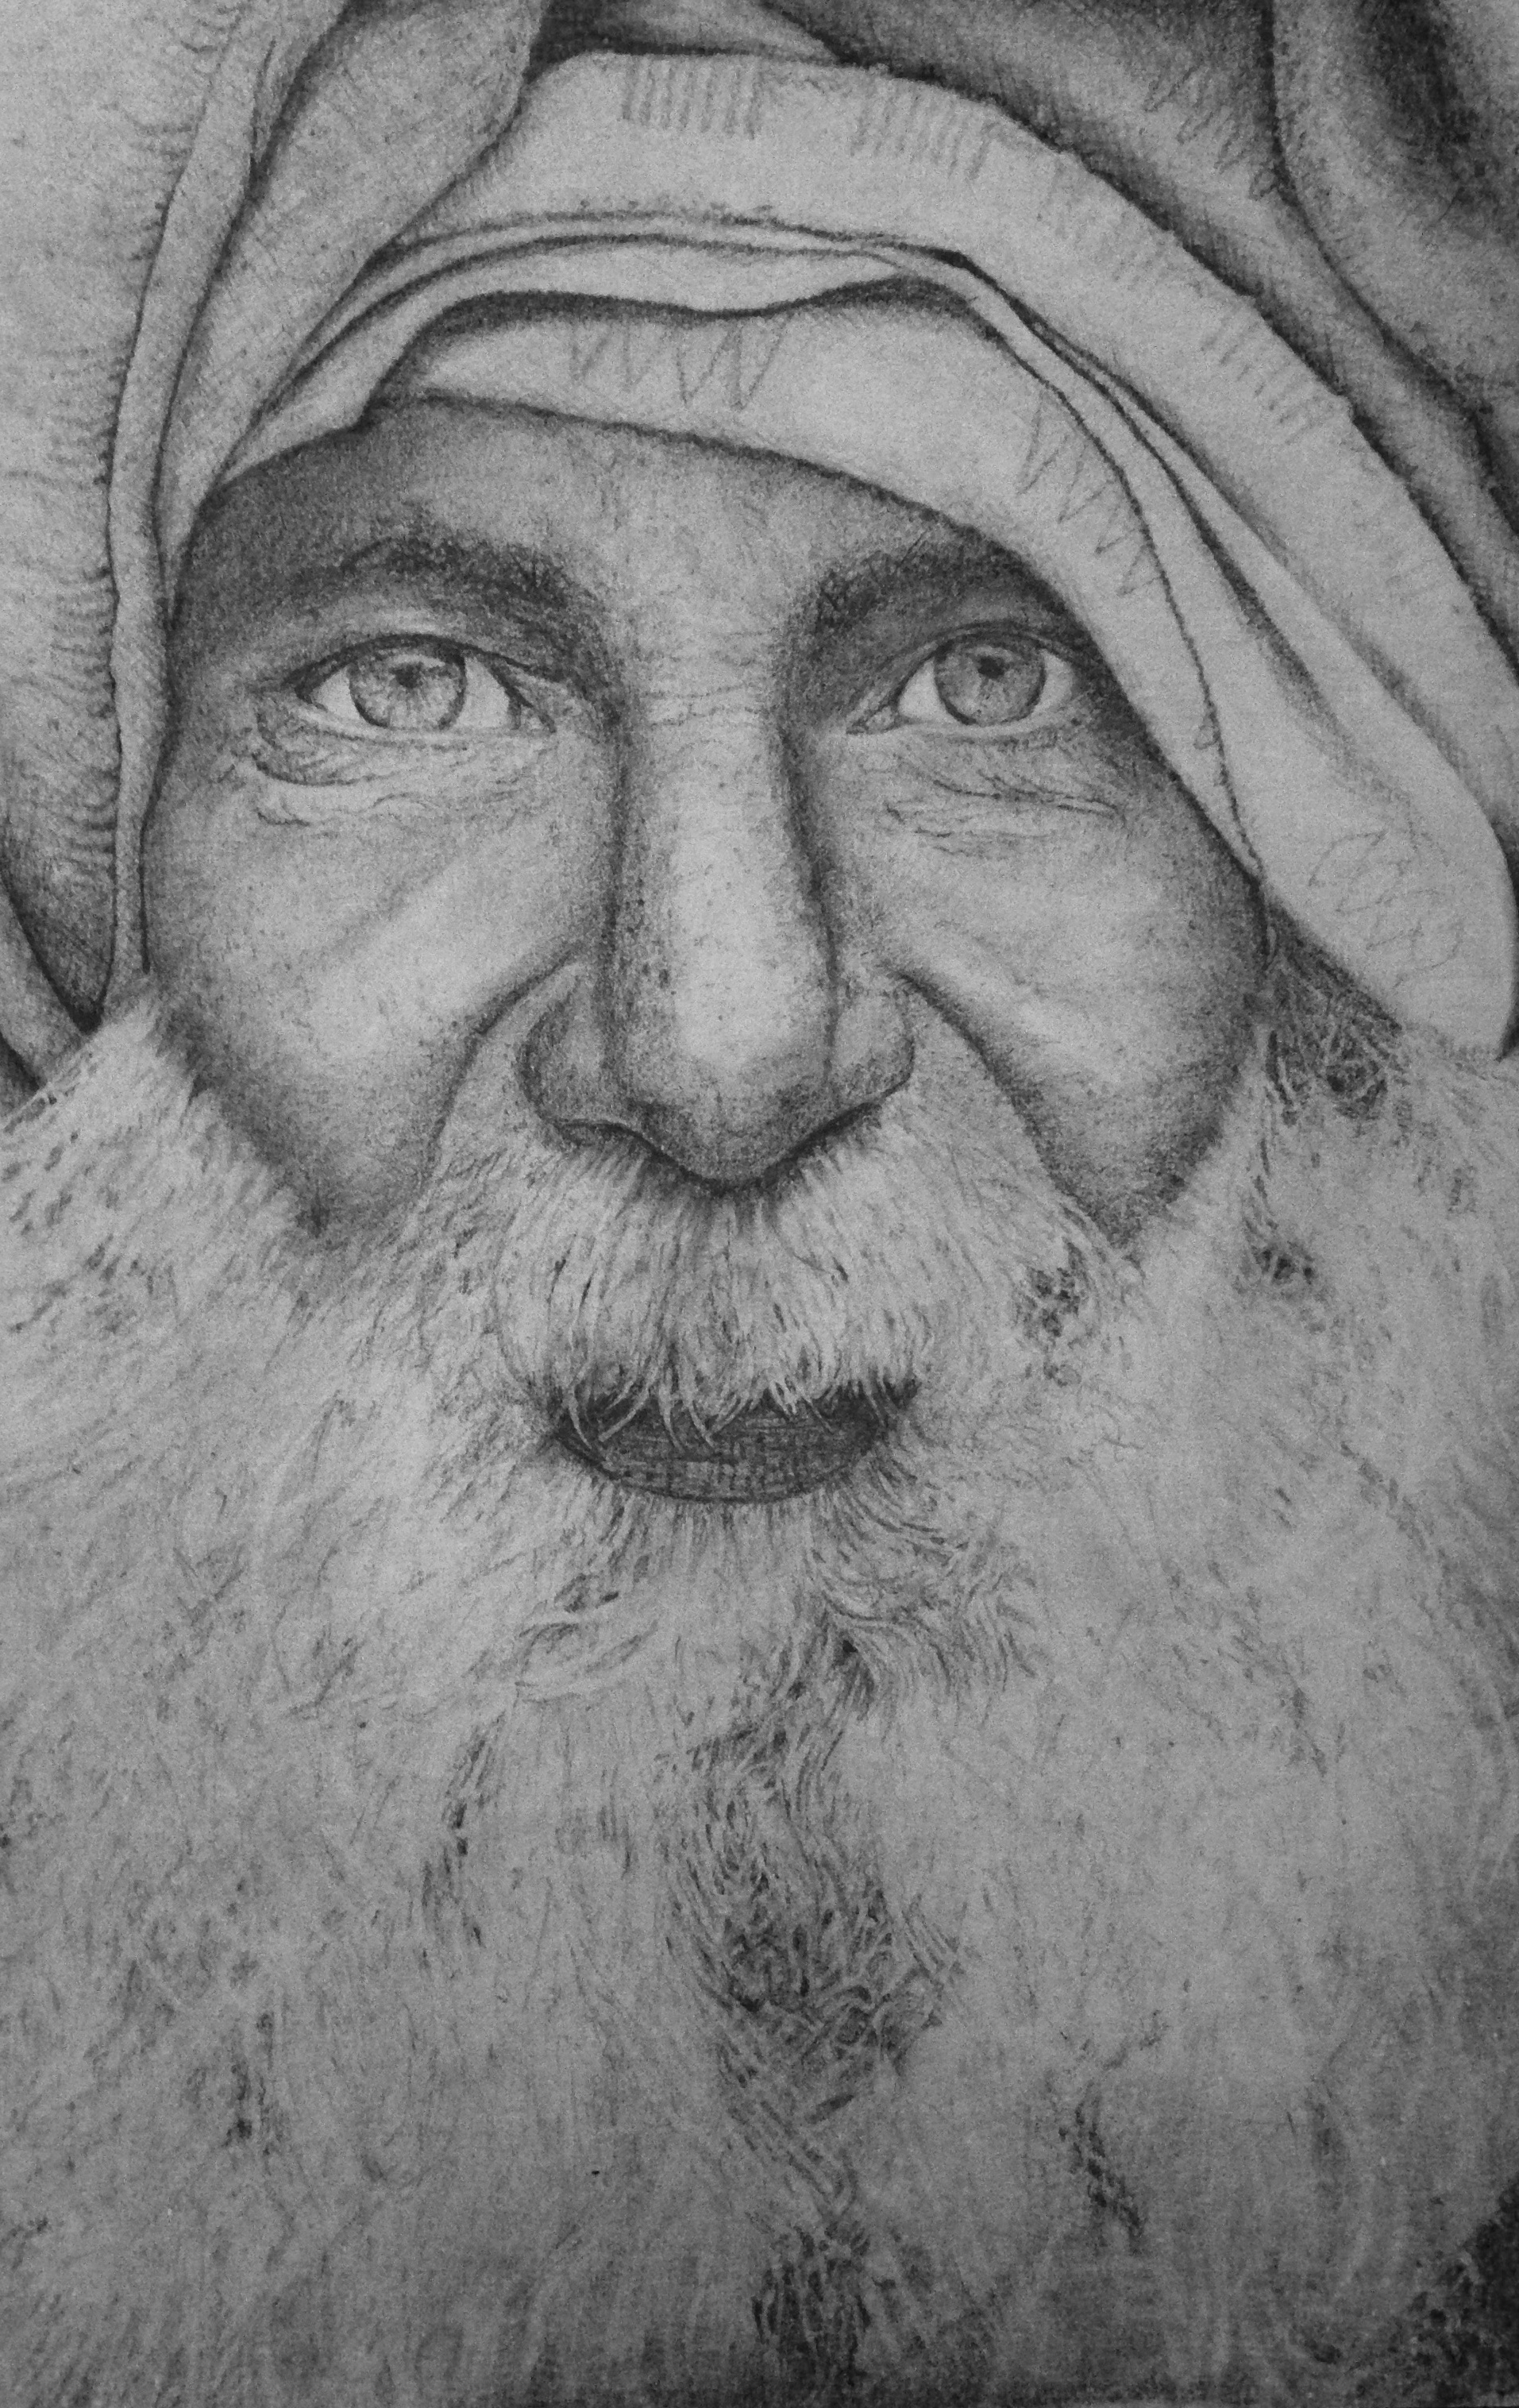 Graphite drawing from a photograph